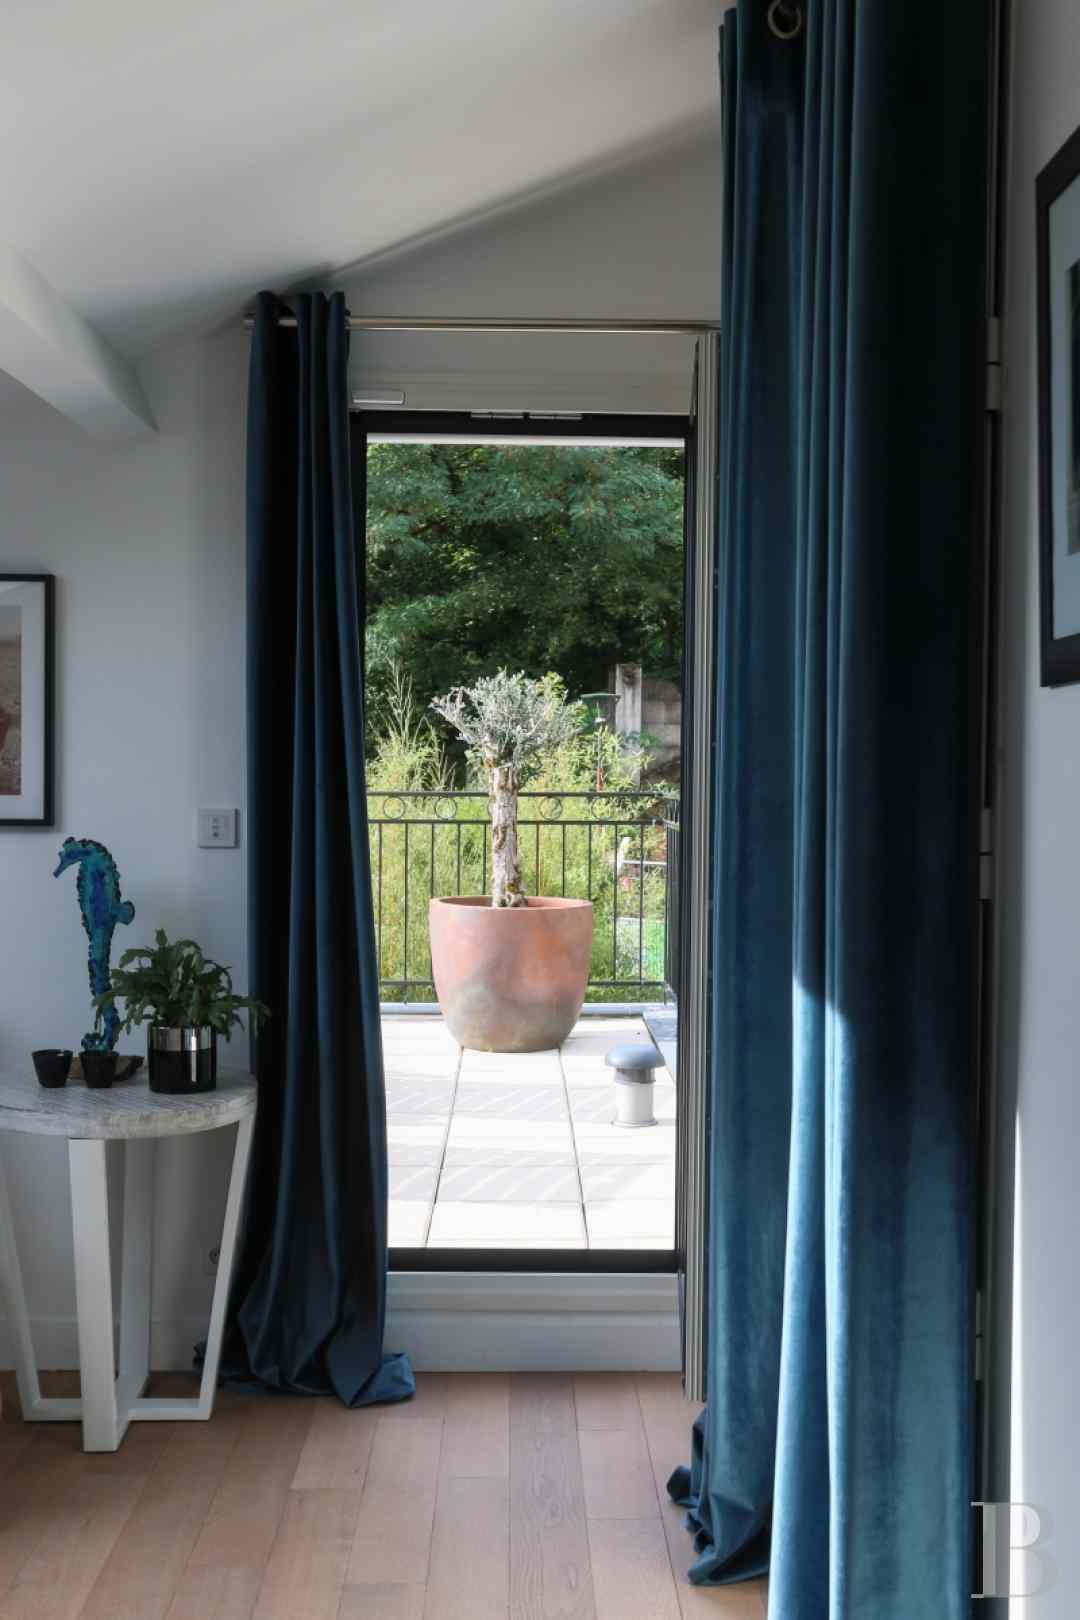 property for sale France paris residences 20th - 10 zoom